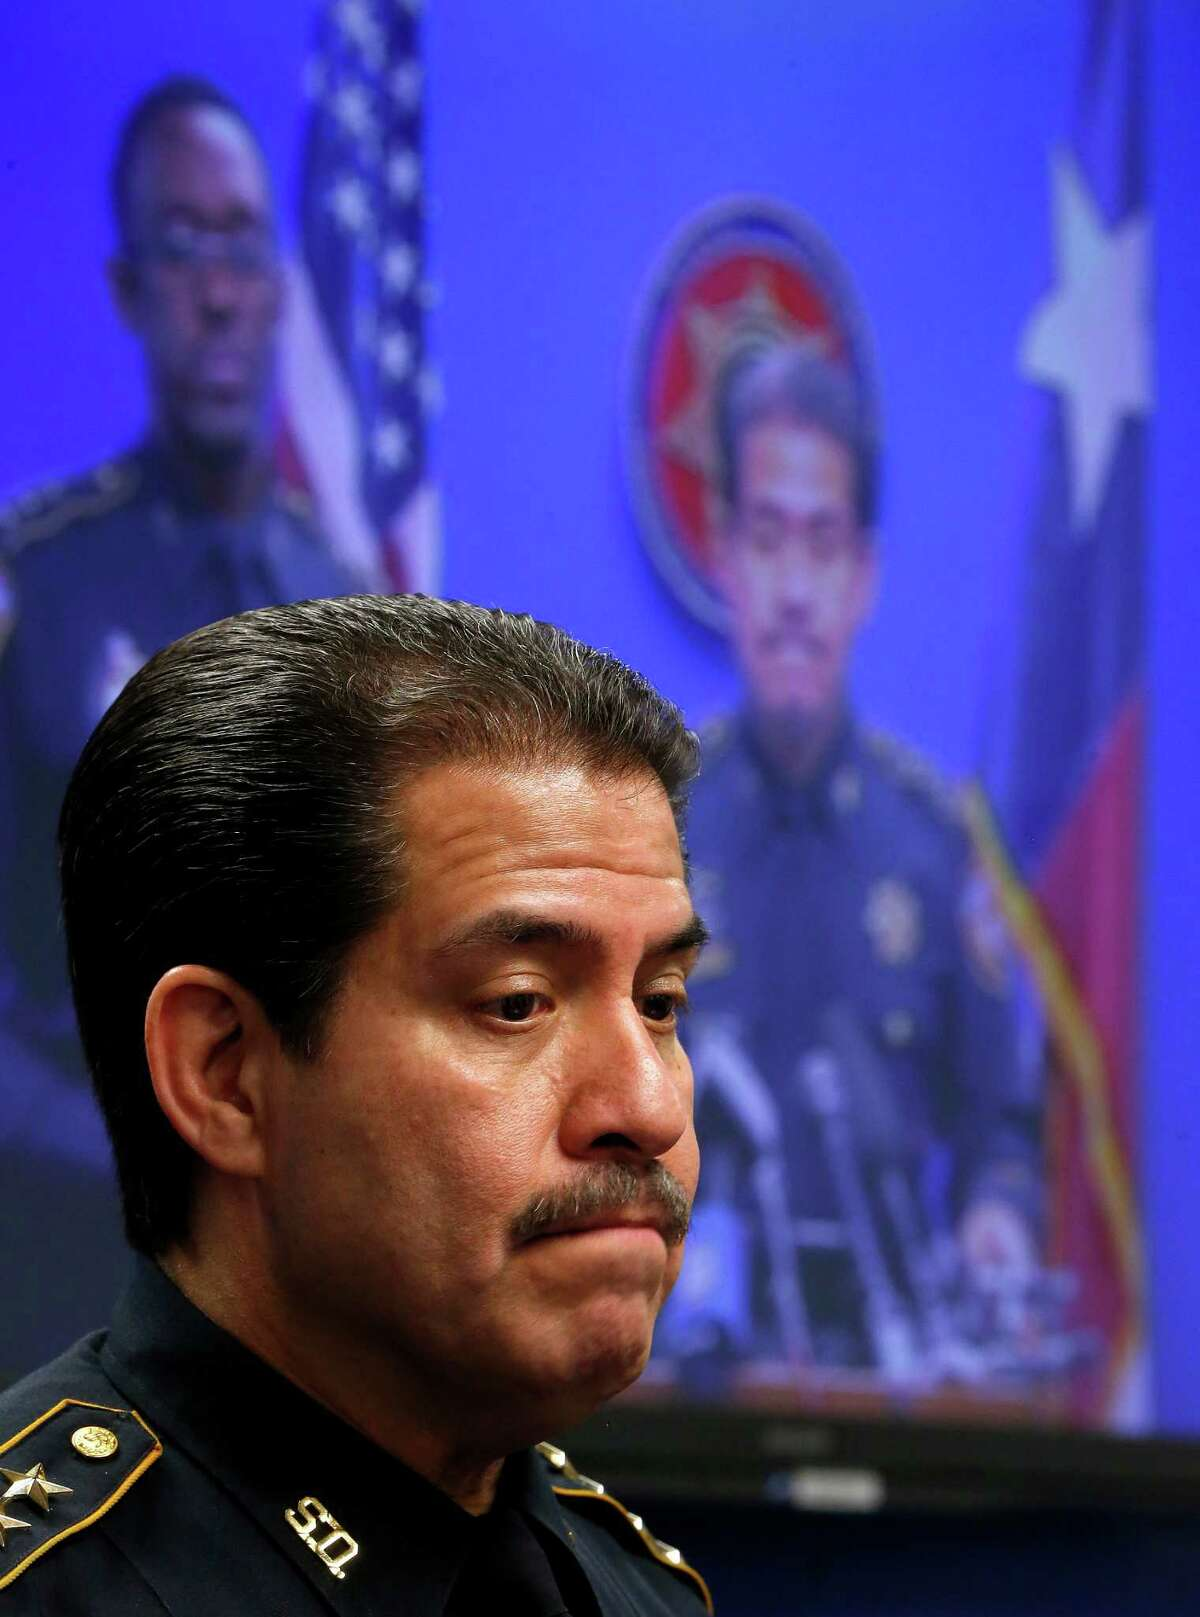 Harris County Sheriff Adrian Garcia announces during a press conference, Friday, April 24, 2015, in Houston, that he fired six jailers and suspended 29 other employees after an investigation revealed deplorable conditions in one cell where a mentally ill inmate was left unattended for weeks. ( Karen Warren / Houston Chronicle )